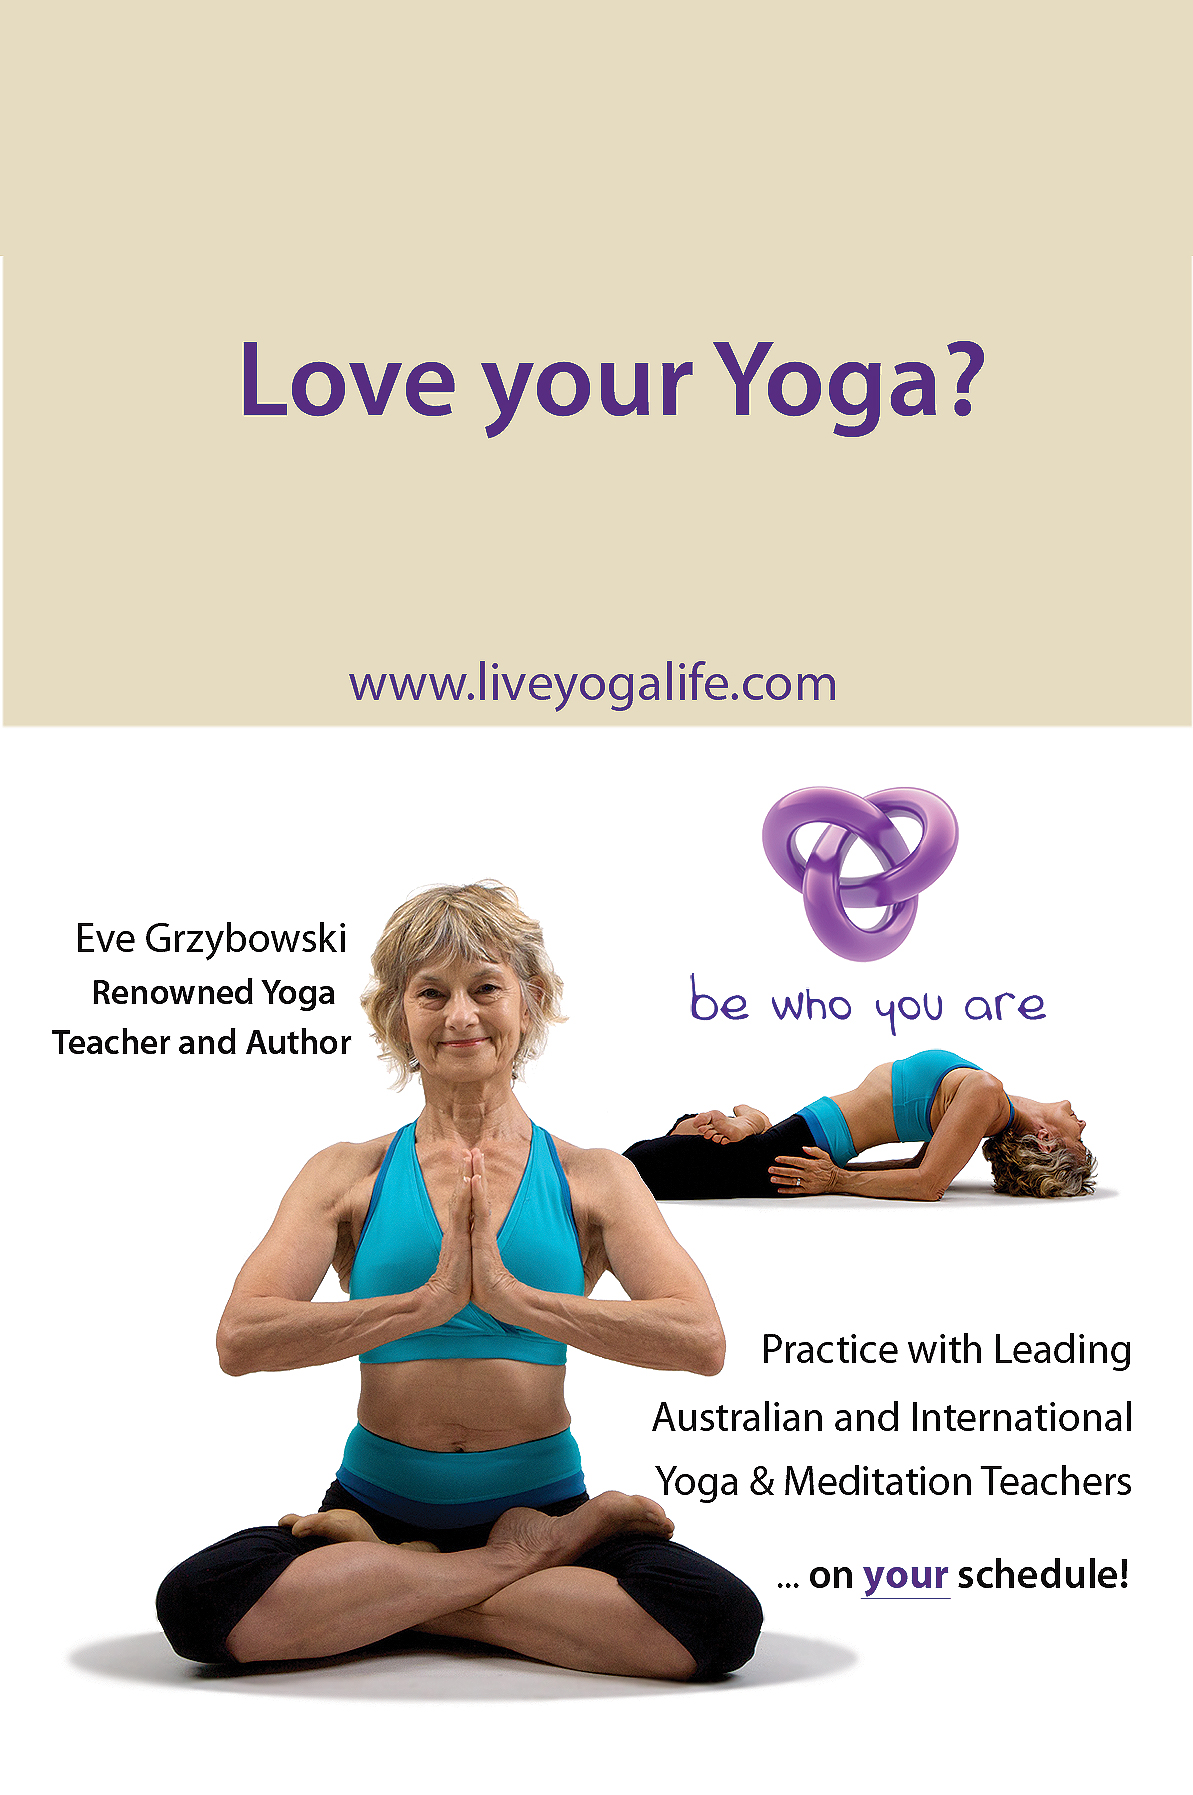 Live Yoga Life: Love Your Yoga?